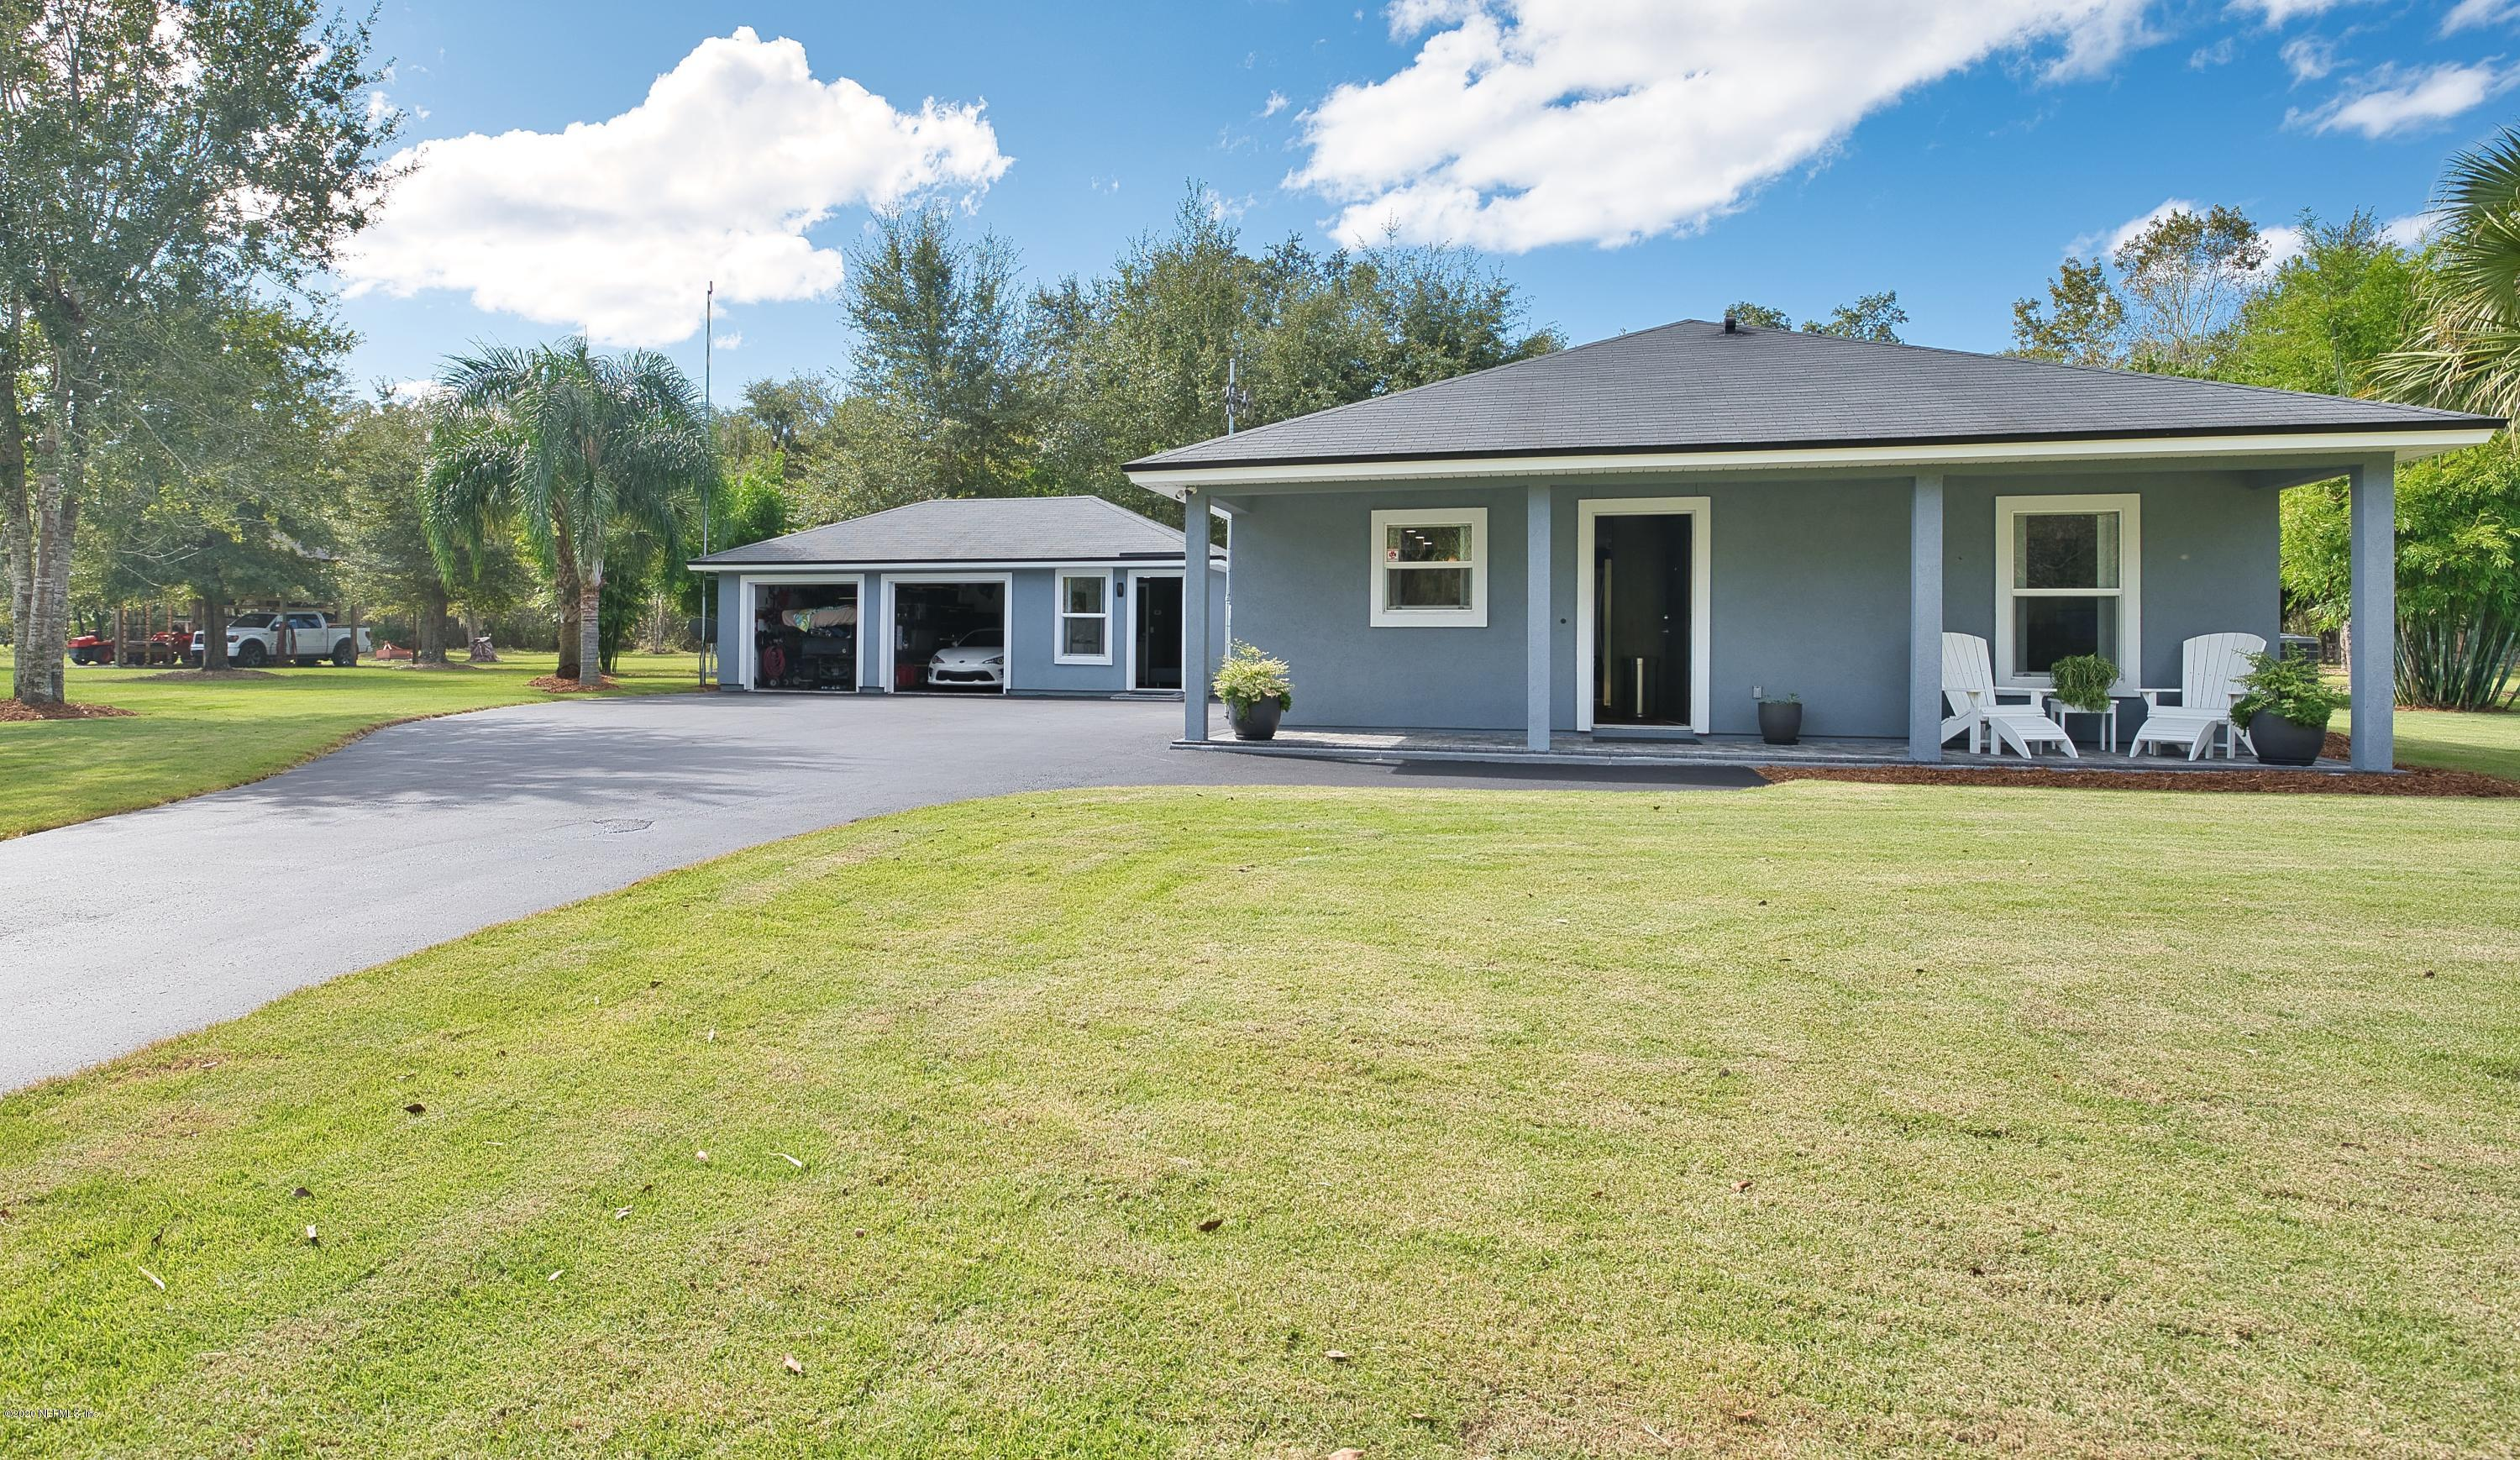 119 RIVER SHORES, GREEN COVE SPRINGS, FLORIDA 32043, 3 Bedrooms Bedrooms, ,2 BathroomsBathrooms,Residential,For sale,RIVER SHORES,1082305